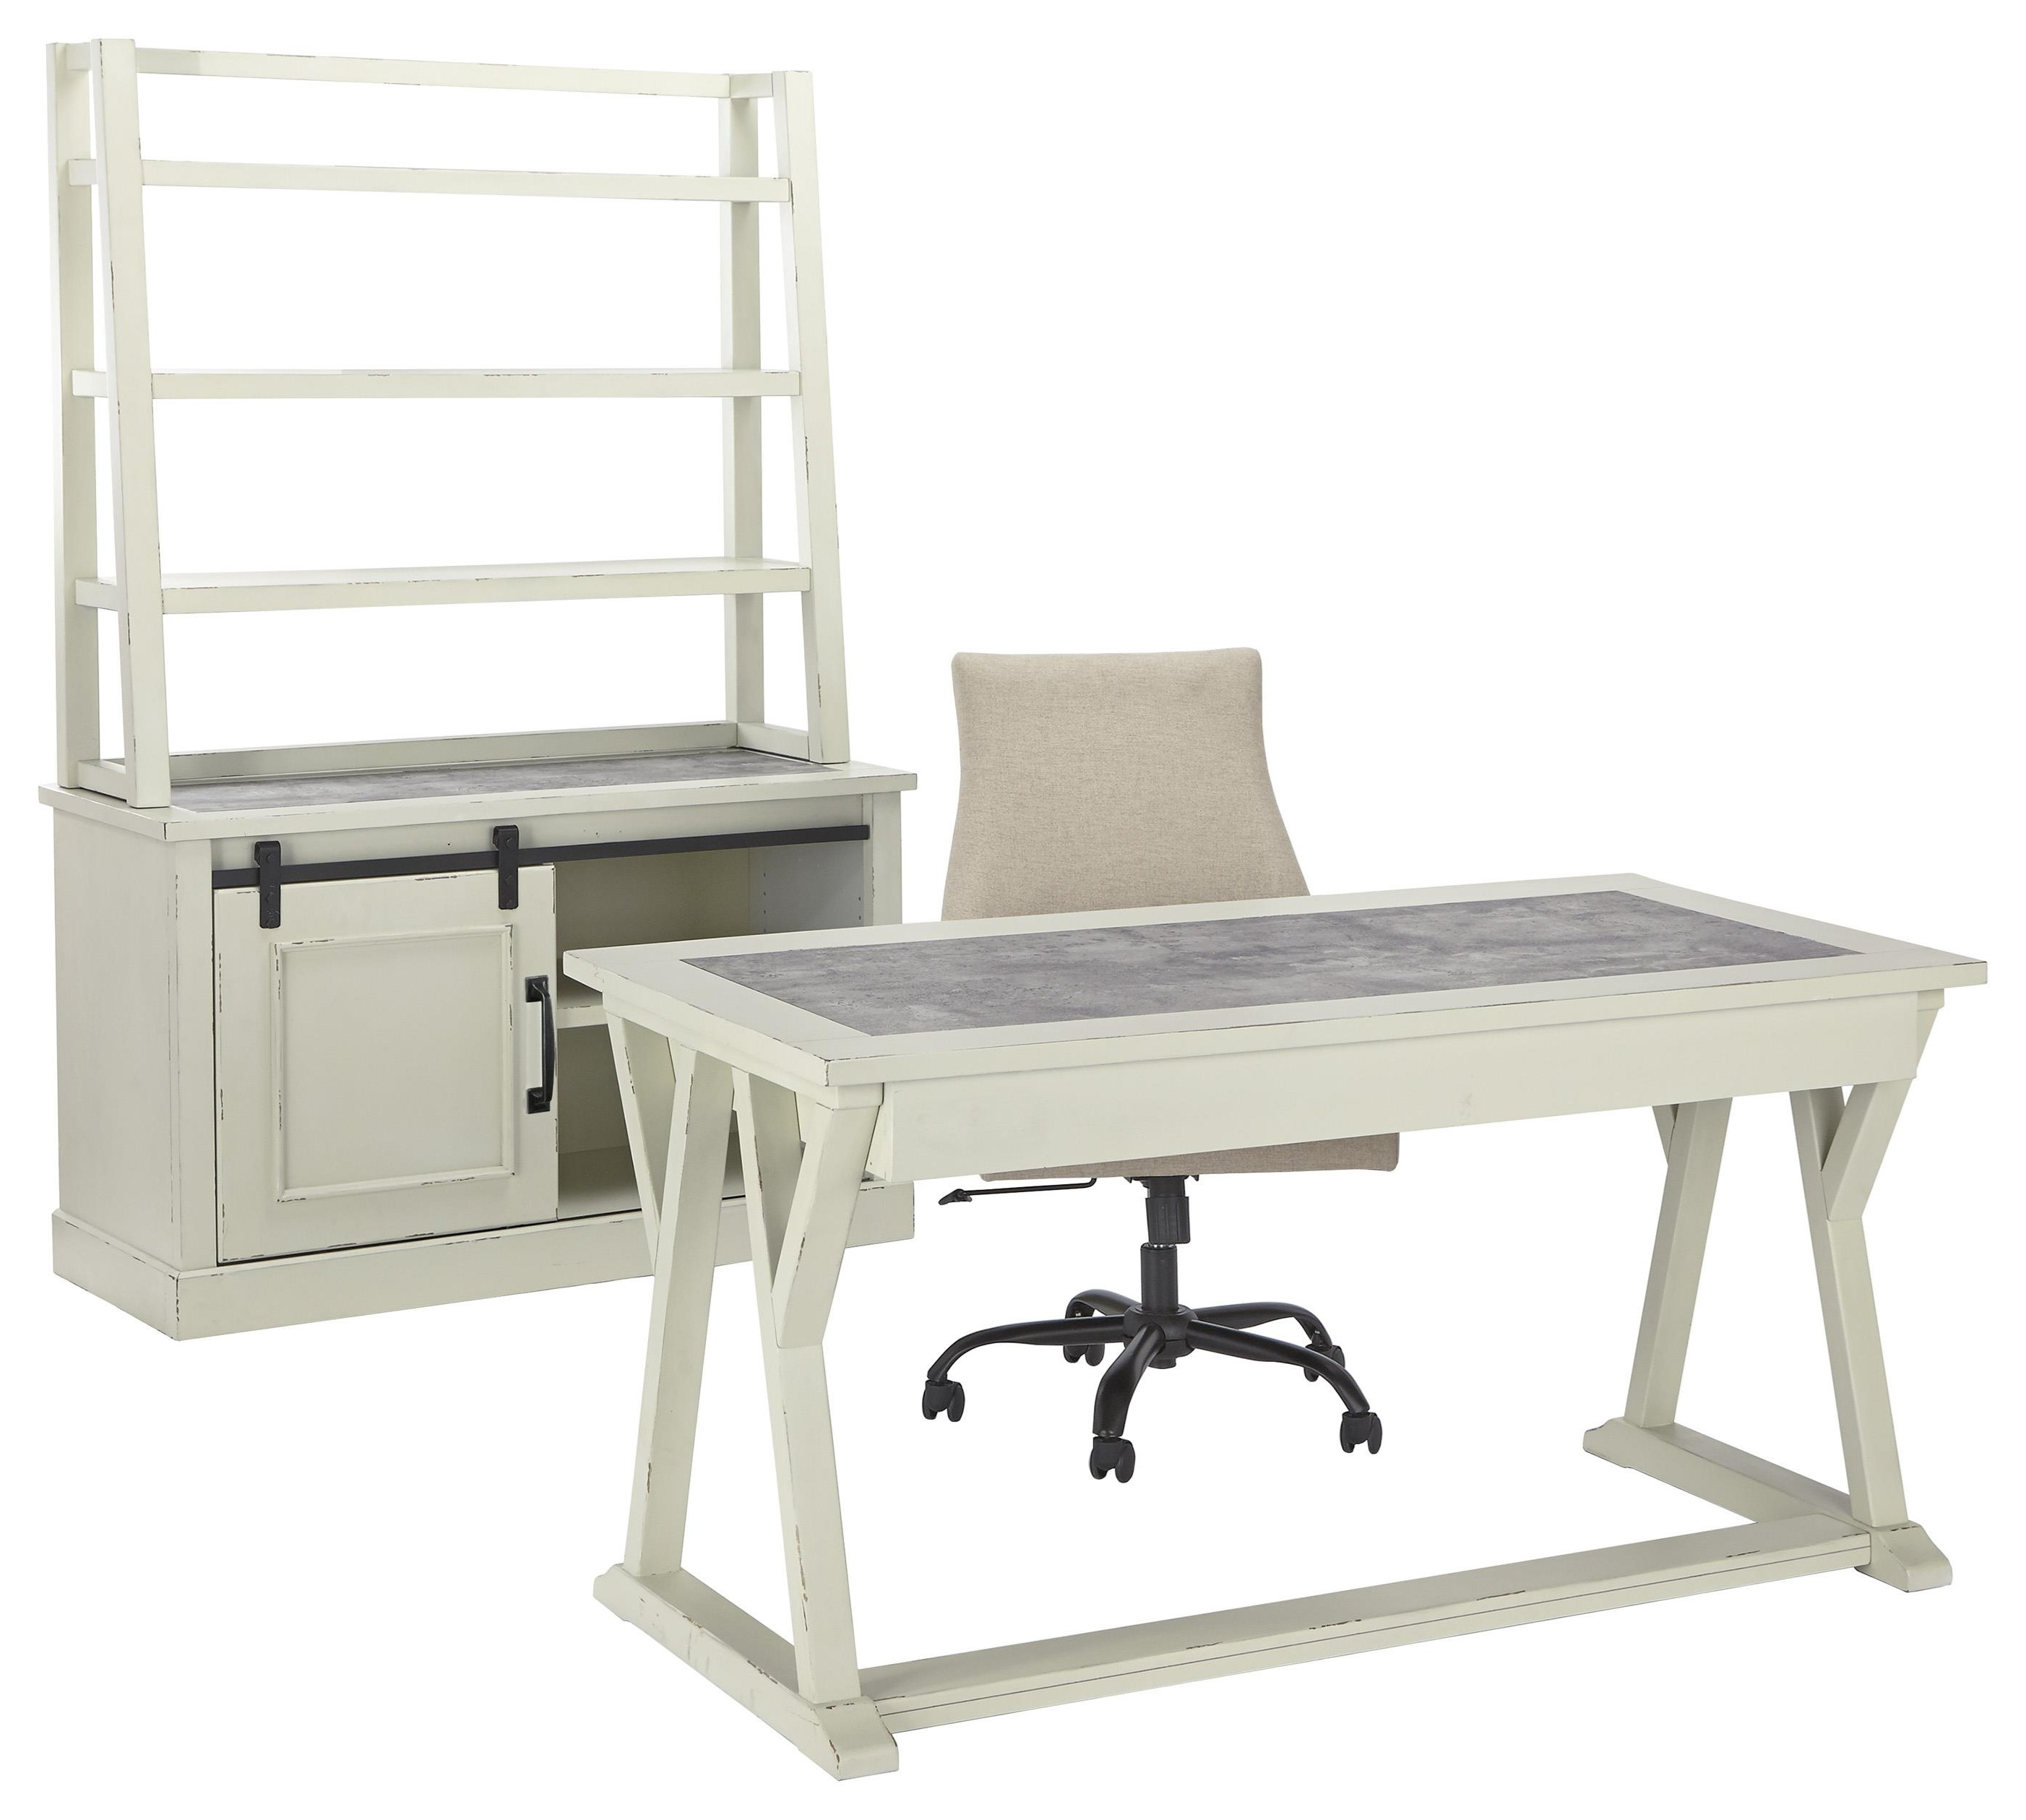 Jonileene Home Office Desk, Chair, Cabinet and Hutch S by Signature Design by Ashley at Sam Levitz Outlet